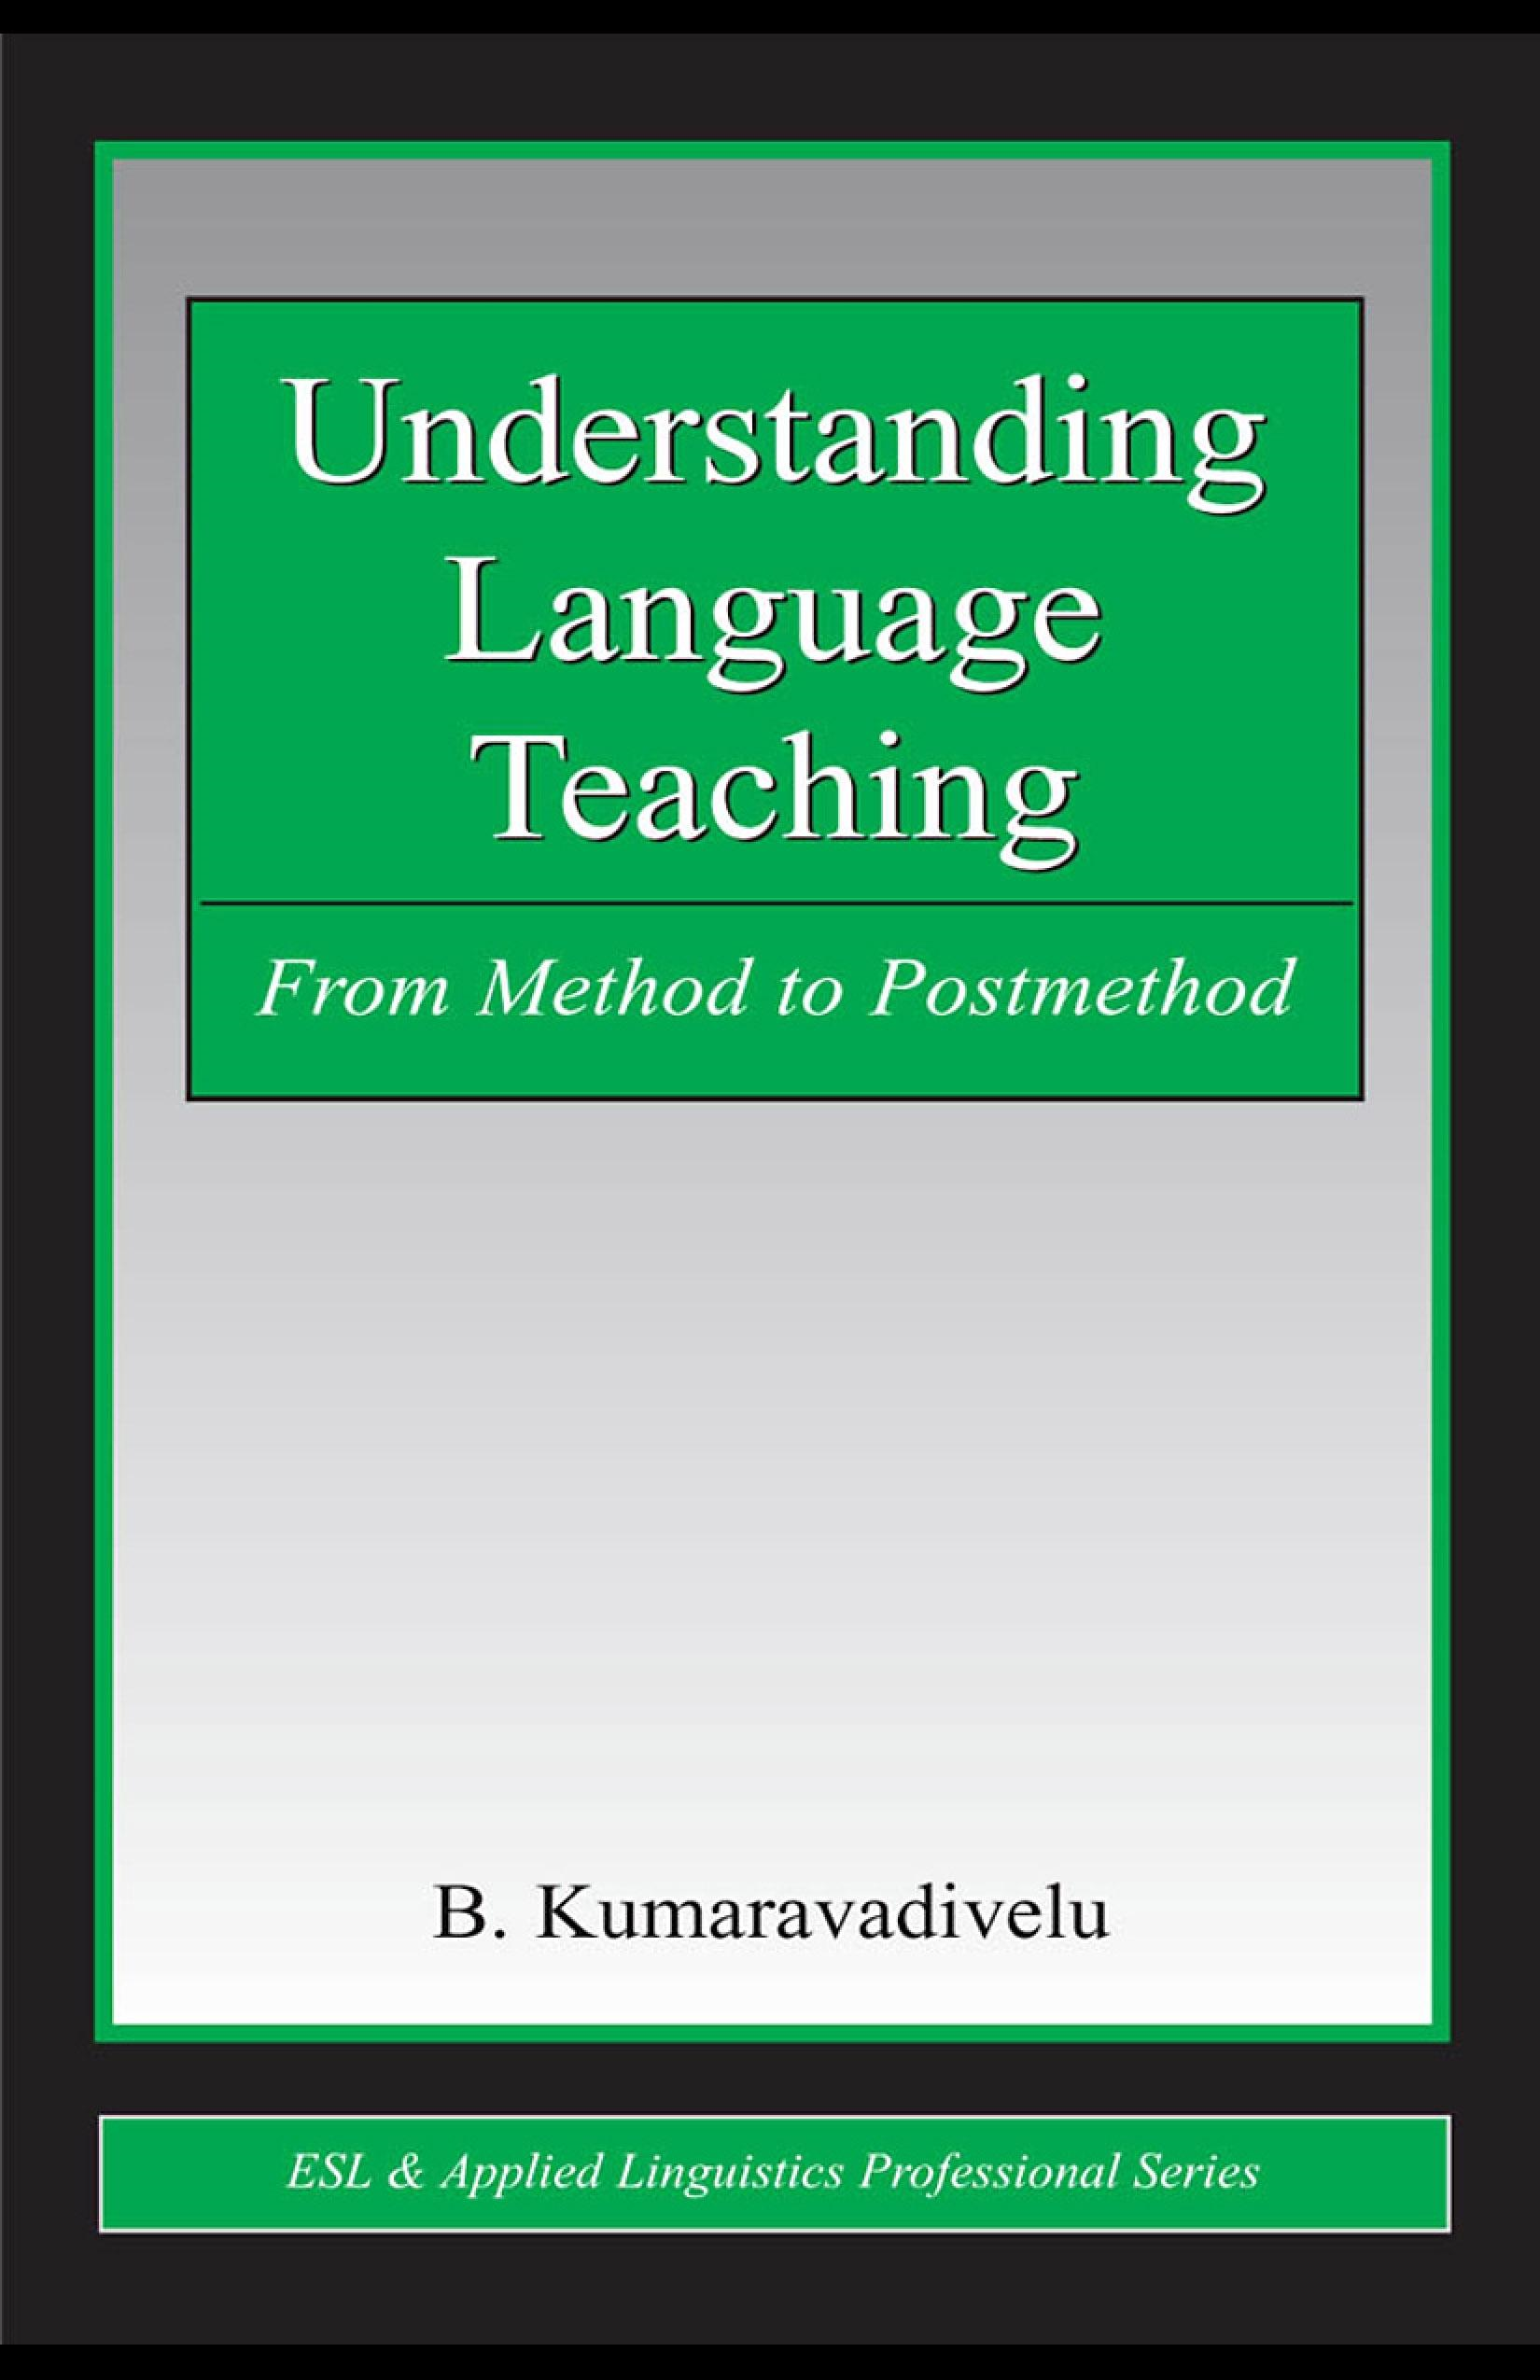 Understanding Language Teaching: From Method to Postmethod